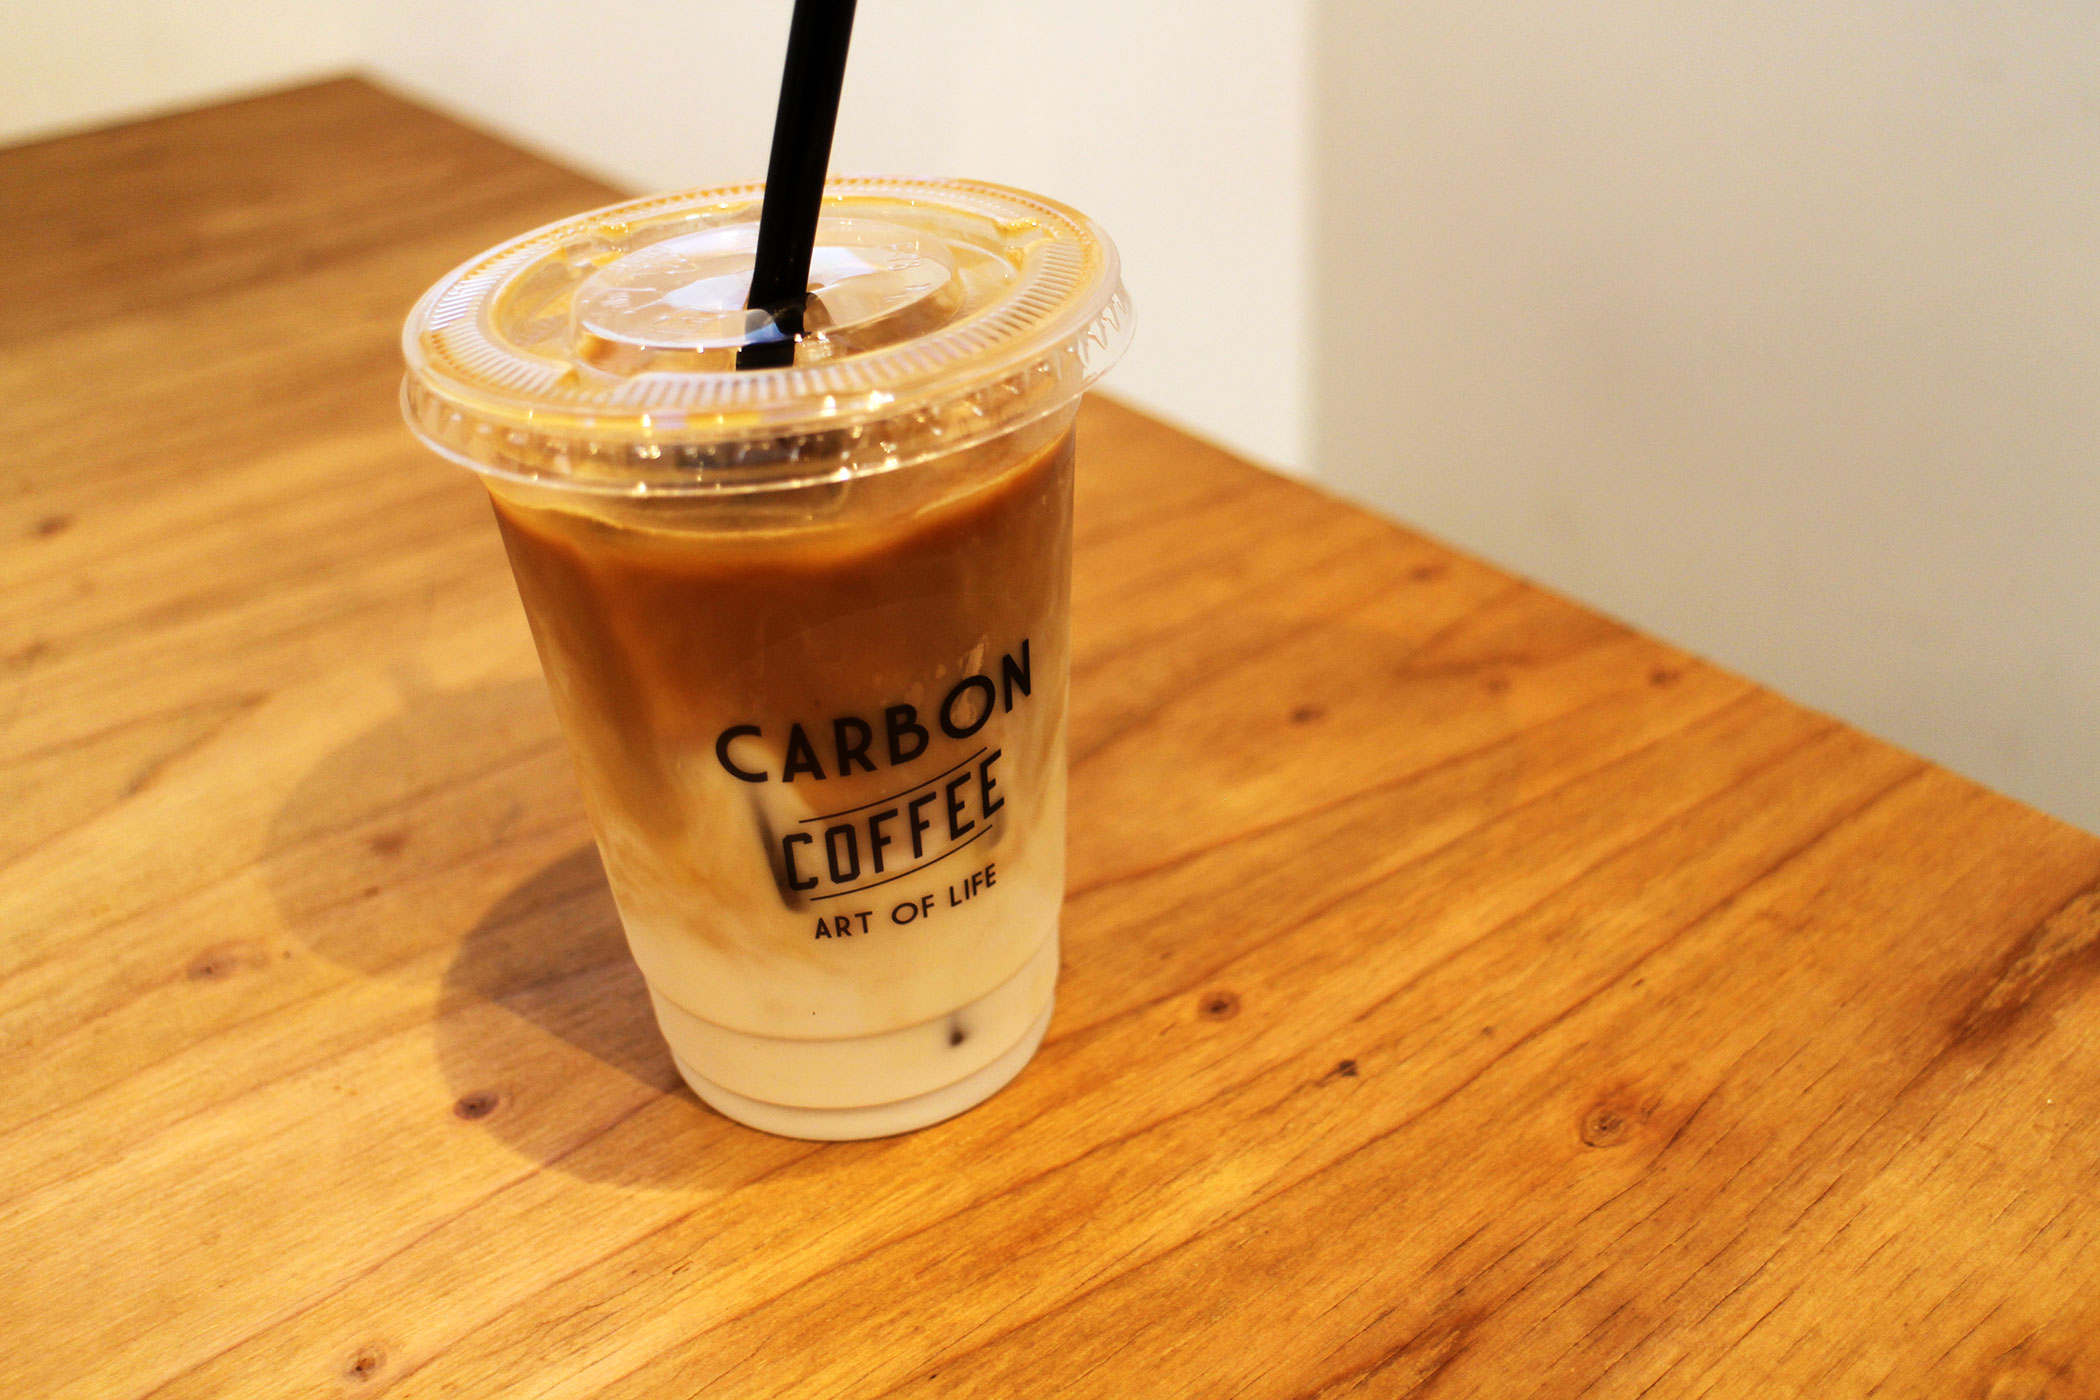 CARBON COFFEE ART OF LIFE - 福岡・大名